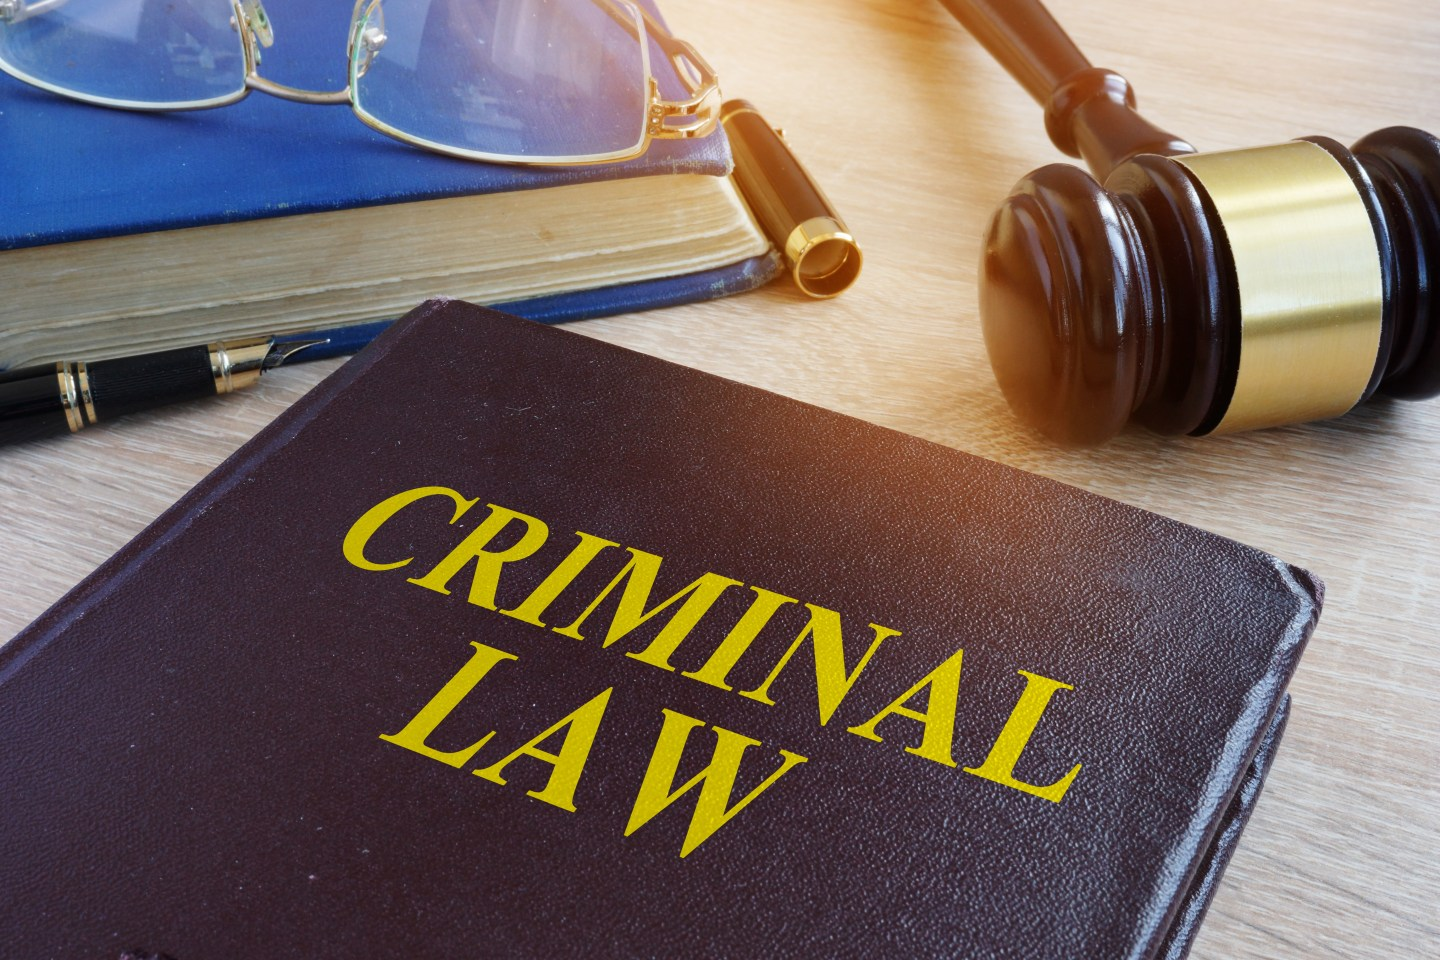 Cannabis Lawyer: Criminal Lawyer